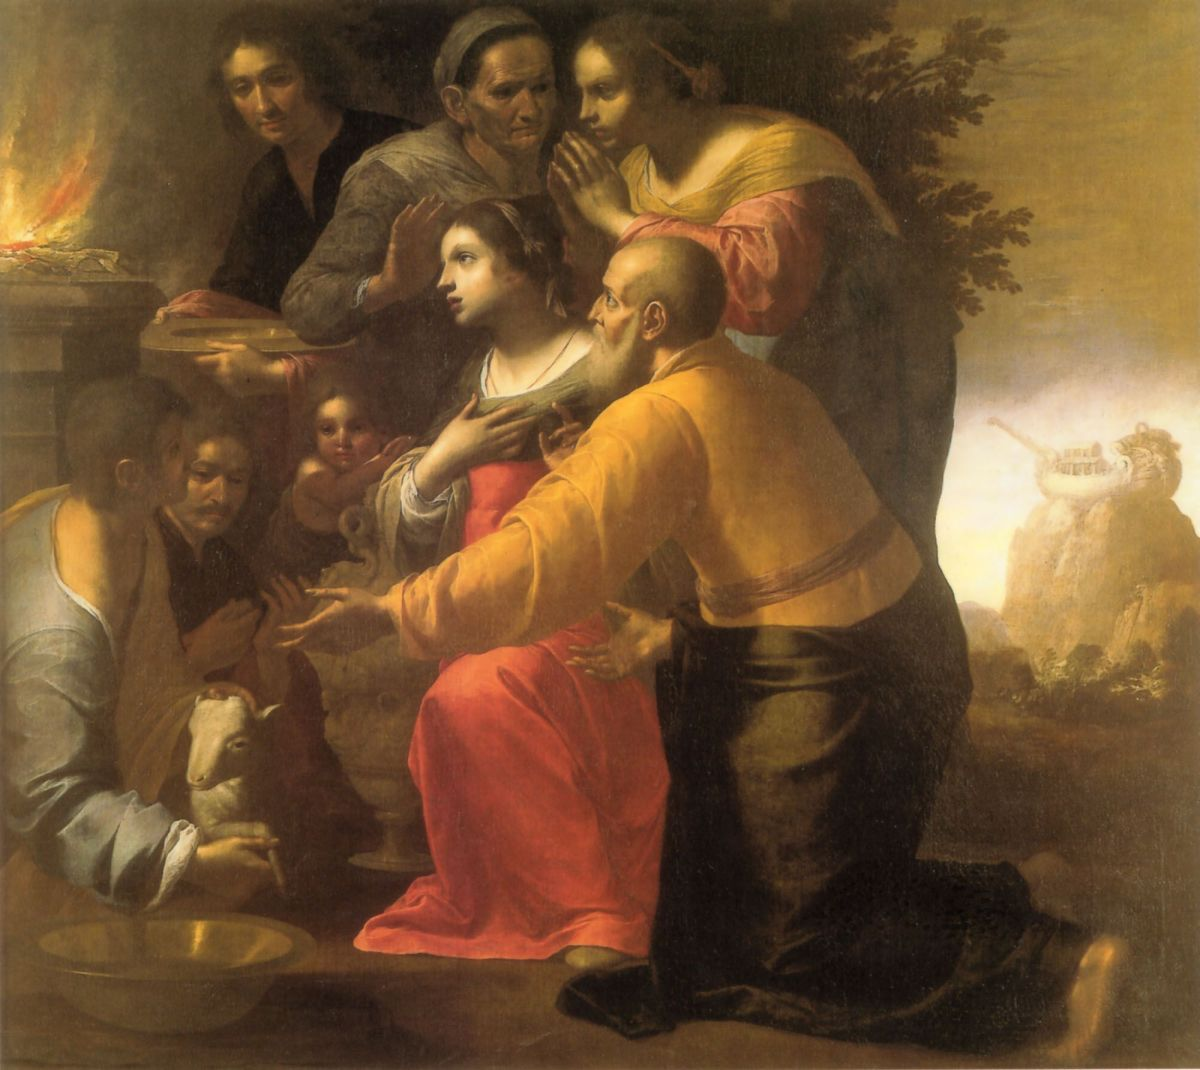 The Lamentation over the Dead Christ by Alessandro Turchi